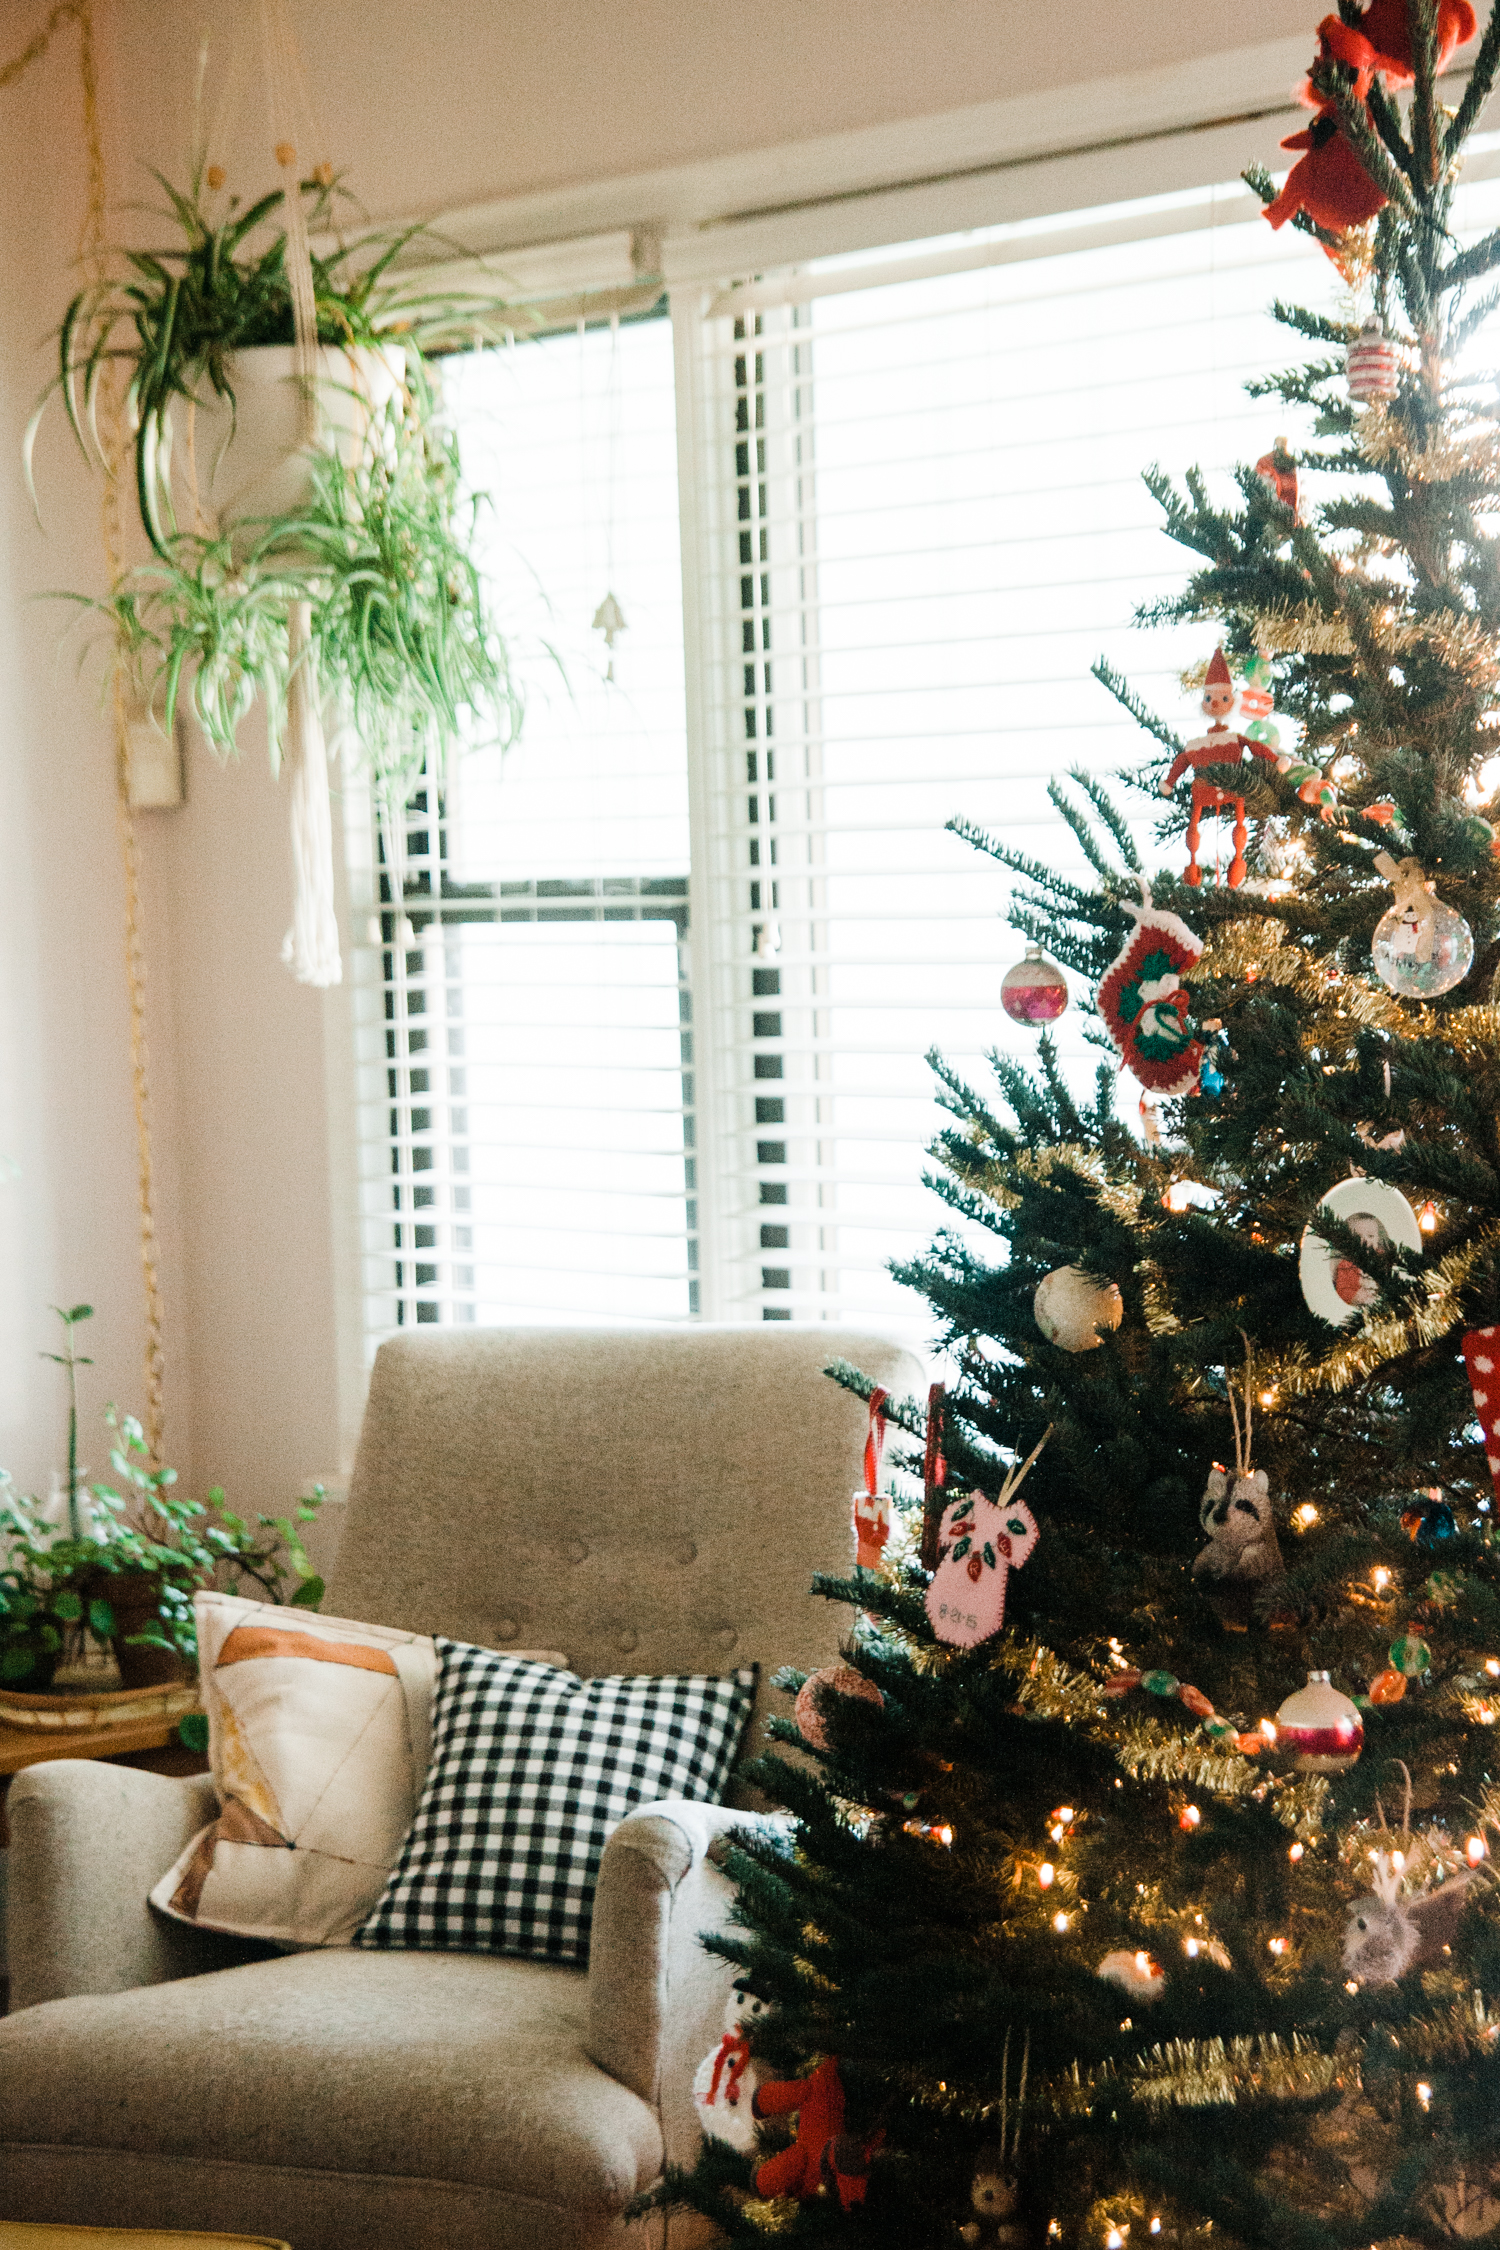 daly holiday home tour-56.jpg